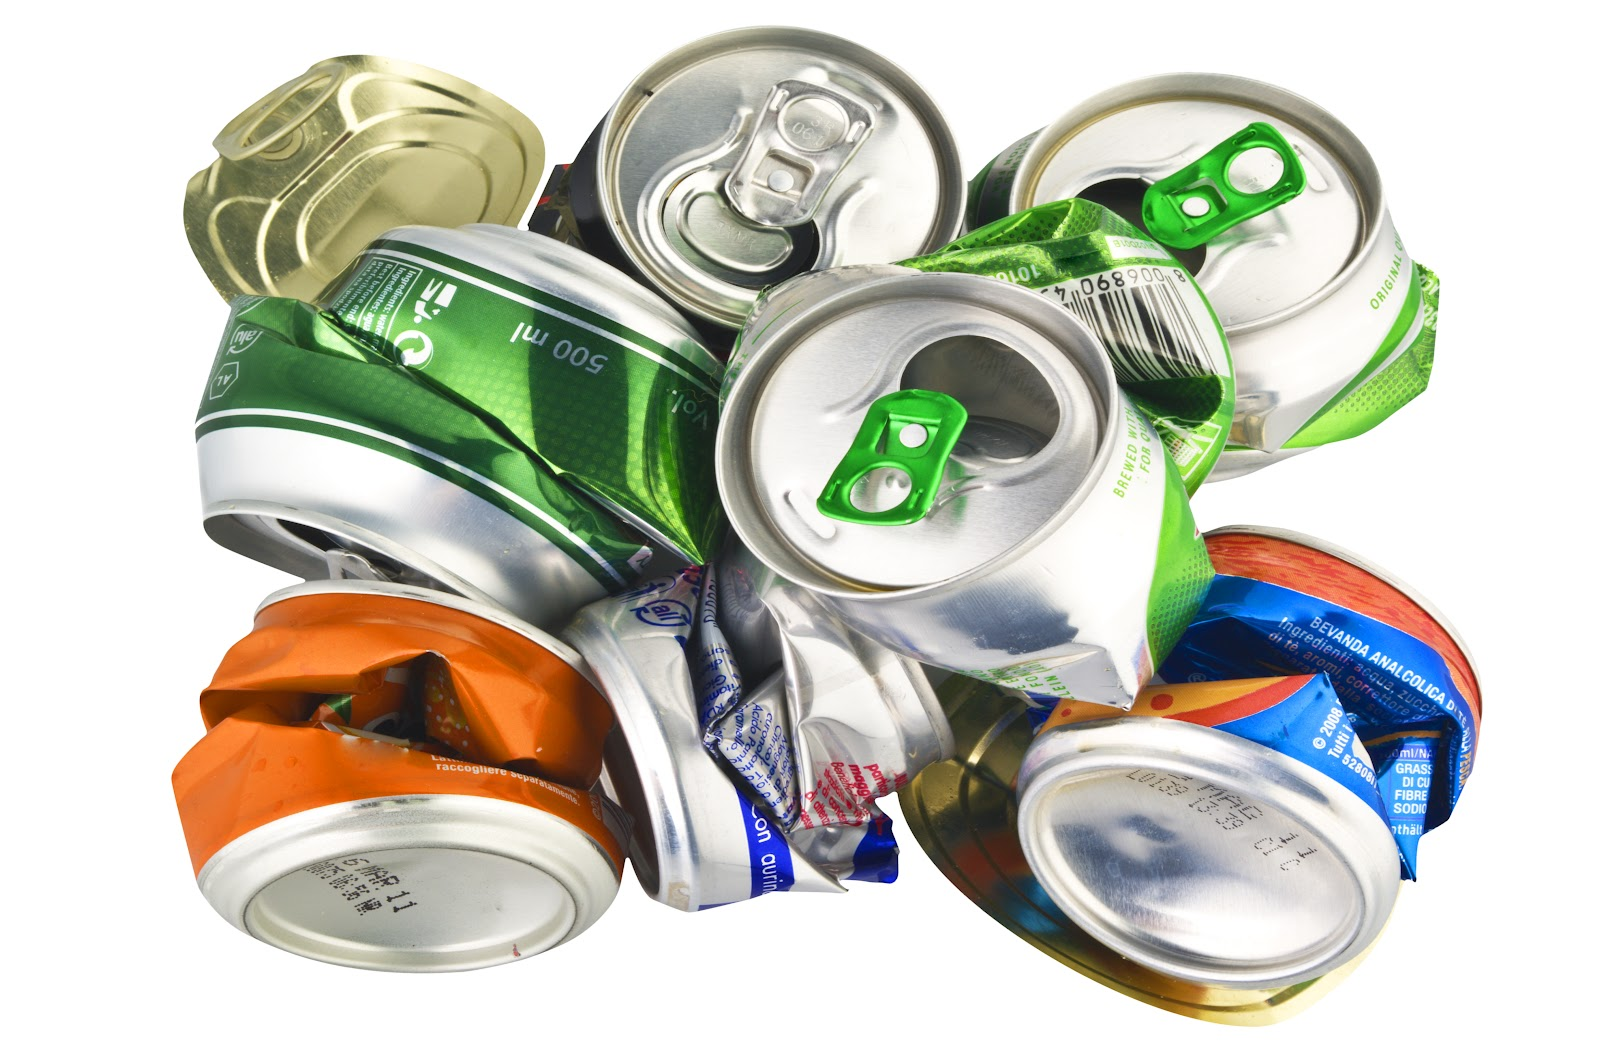 recycling aluminum Recycling aluminum, search tradekoreacom for recycling aluminum products, manufacturers, suppliers, exporters.